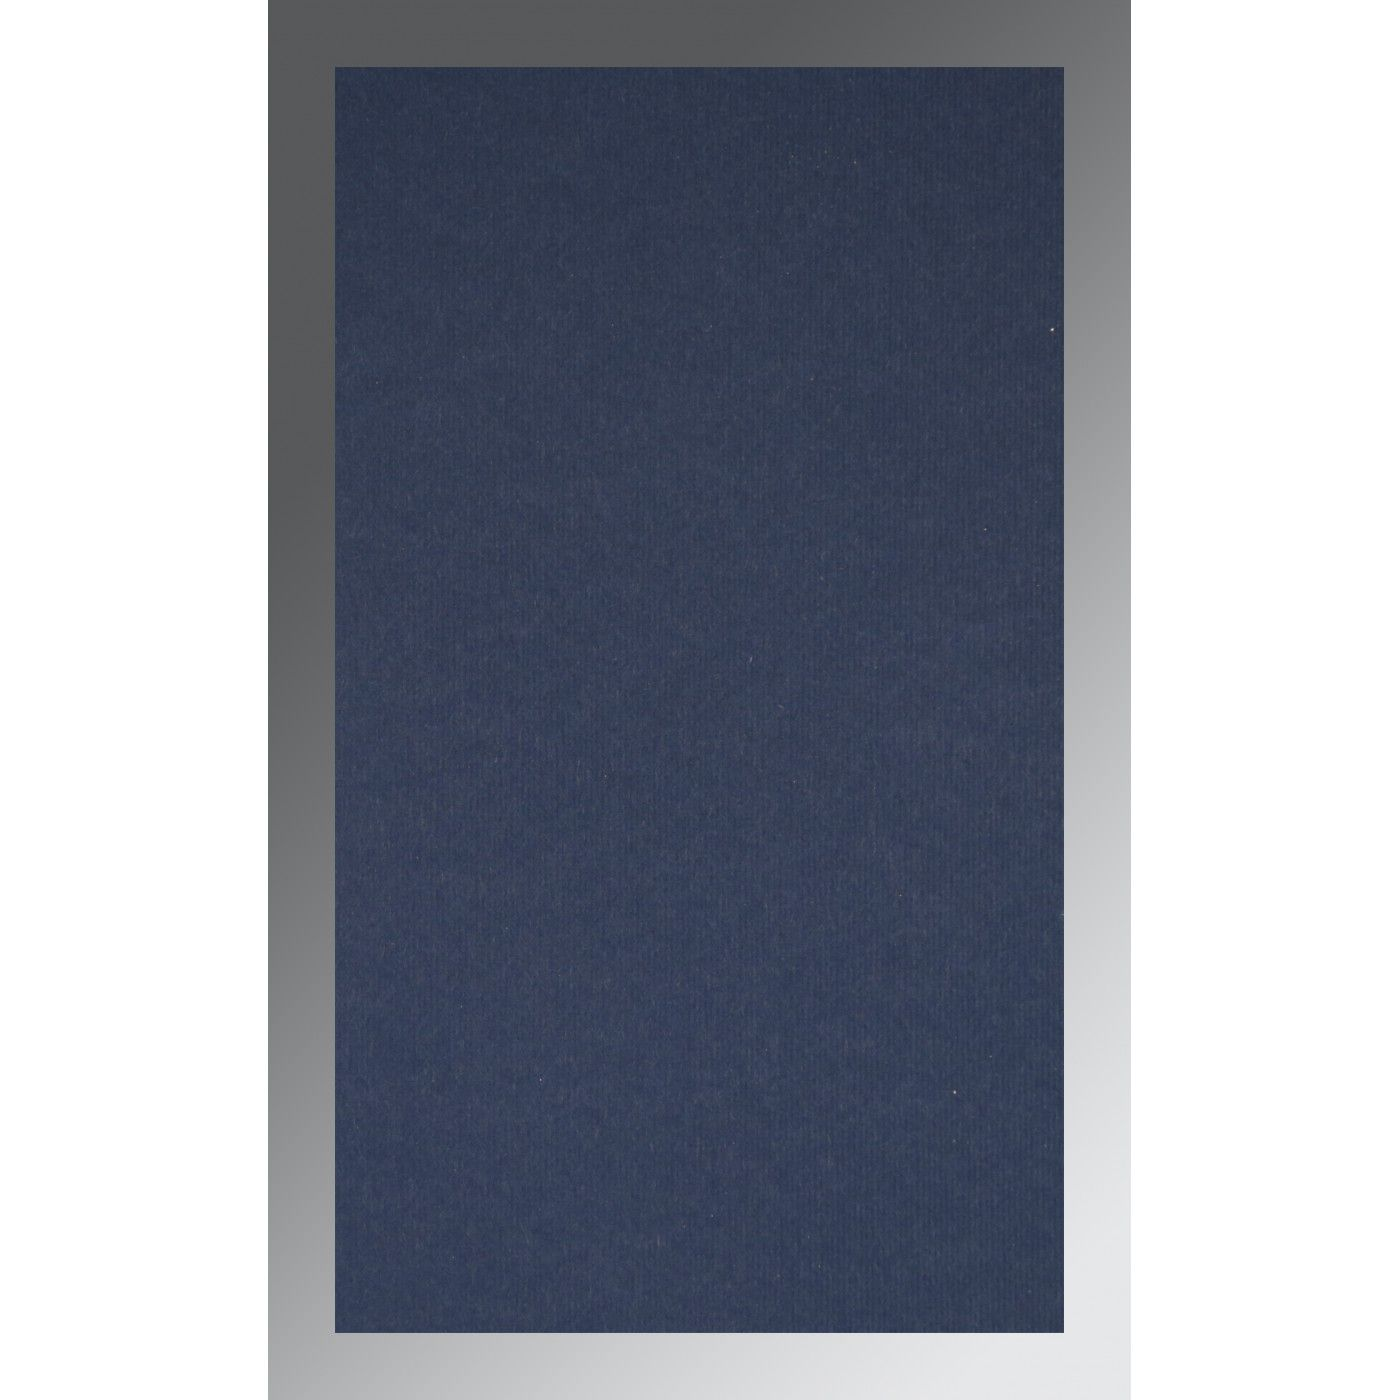 TATIANA MIDNIGHT BLUE MATTE FOIL STAMPED WEDDING INVITATION : CW-1433 - IndianWeddingCards